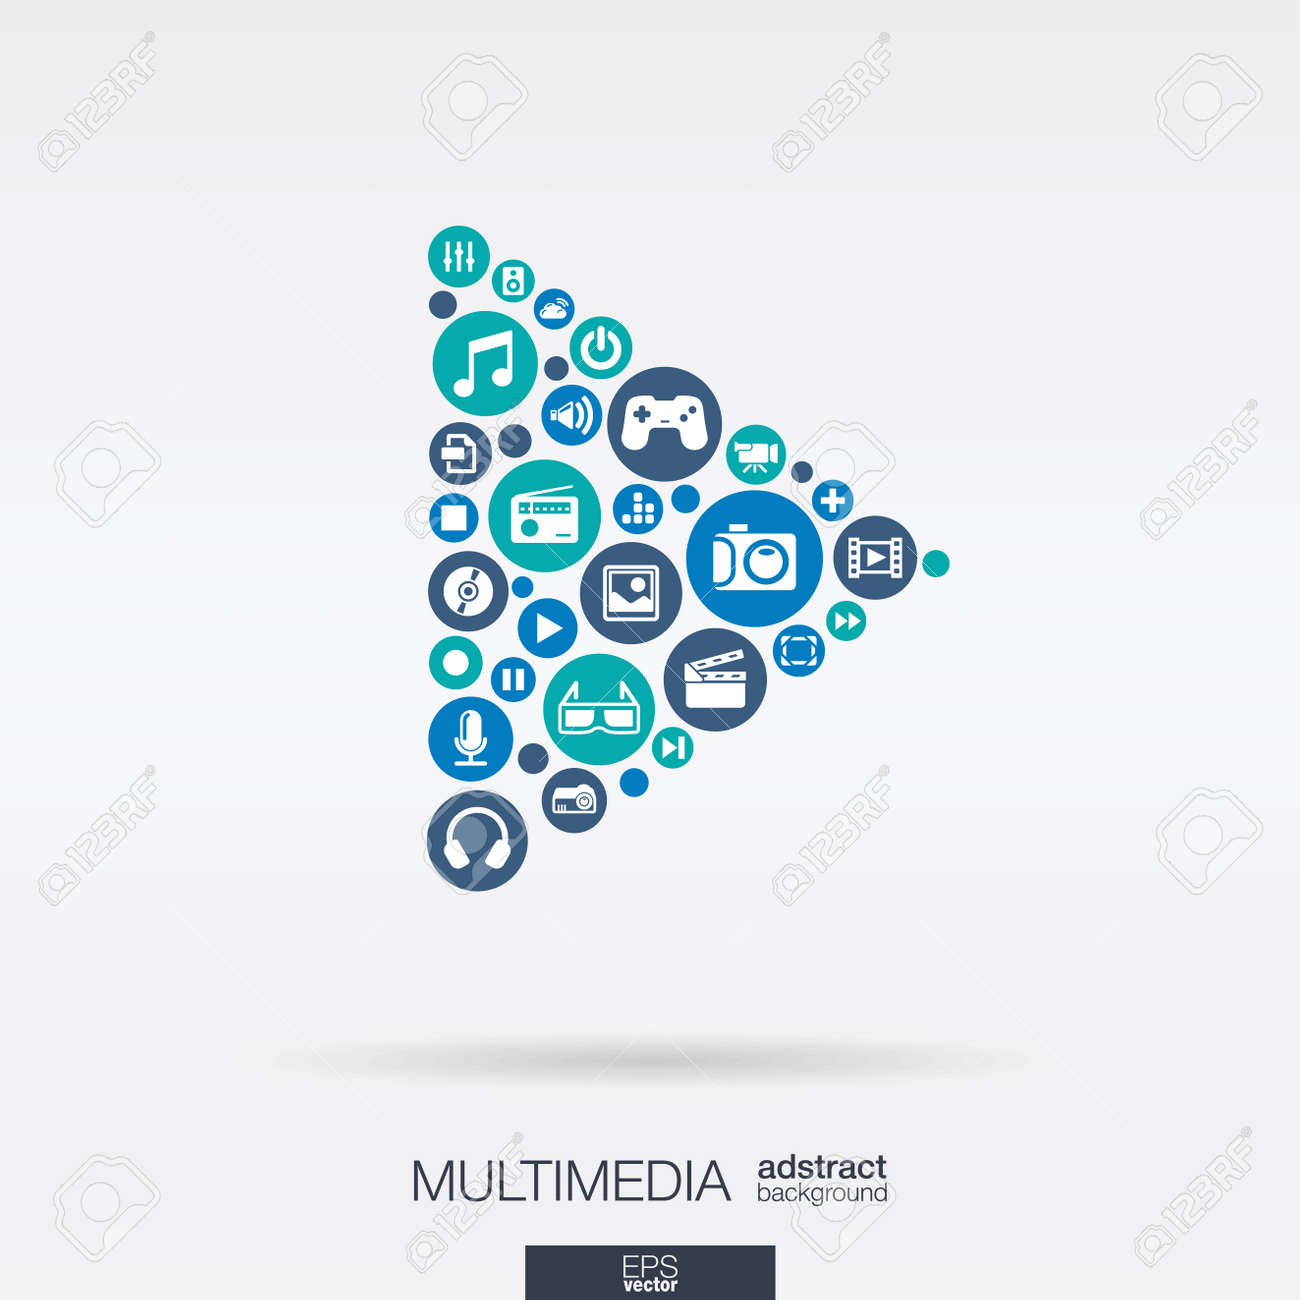 Color circles, flat icons in a play button shape: multimedia, technology, digital, music, film, gaming concept. Abstract background with connected objects in integrated group. Vector illustration - 43380027